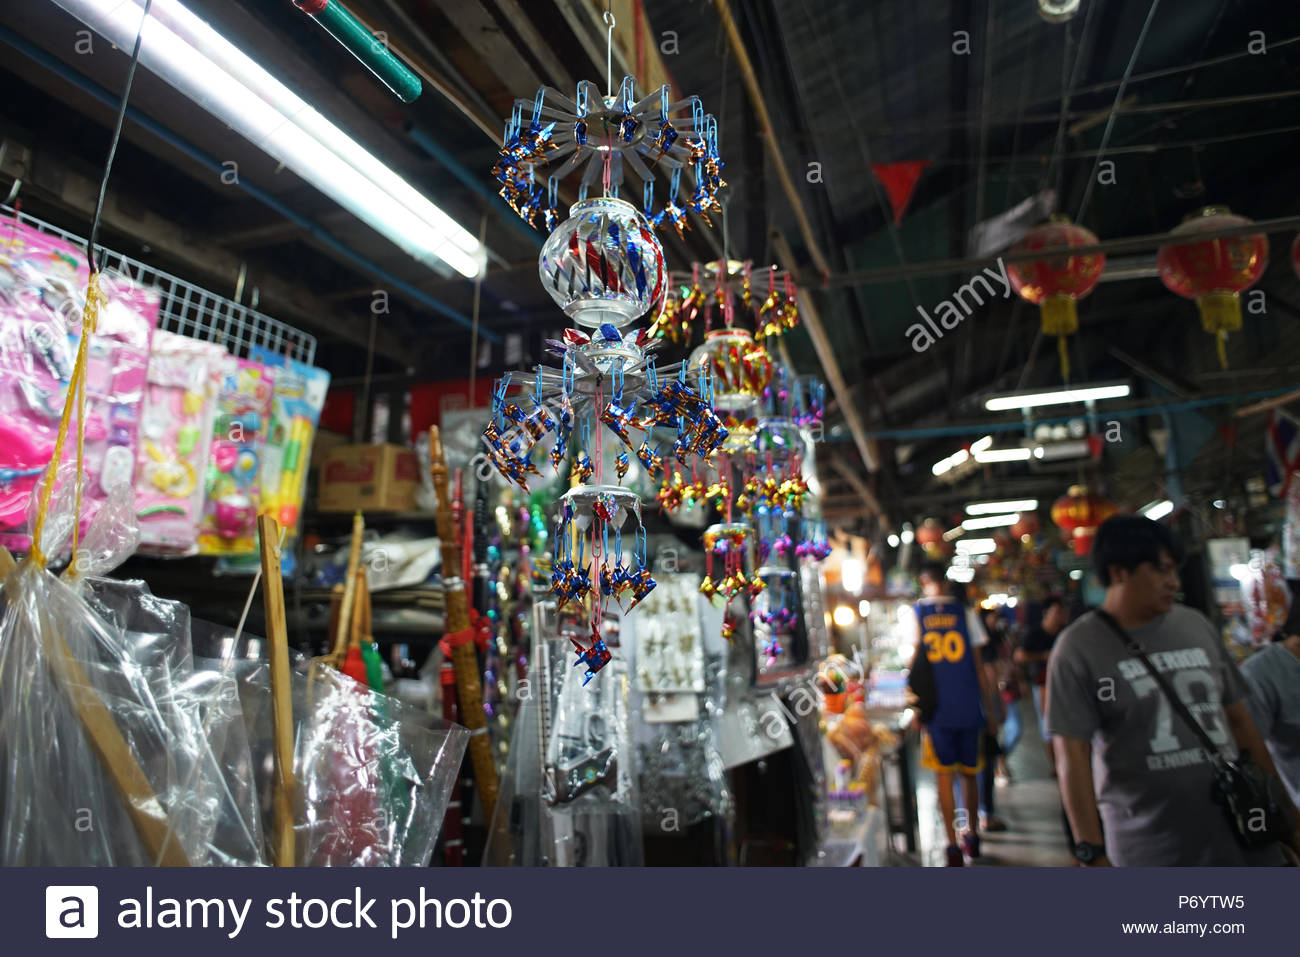 Klong Suan100 Year Old Market.Old market style at  chachoengsao, Thailand 29May2018 - Stock Image